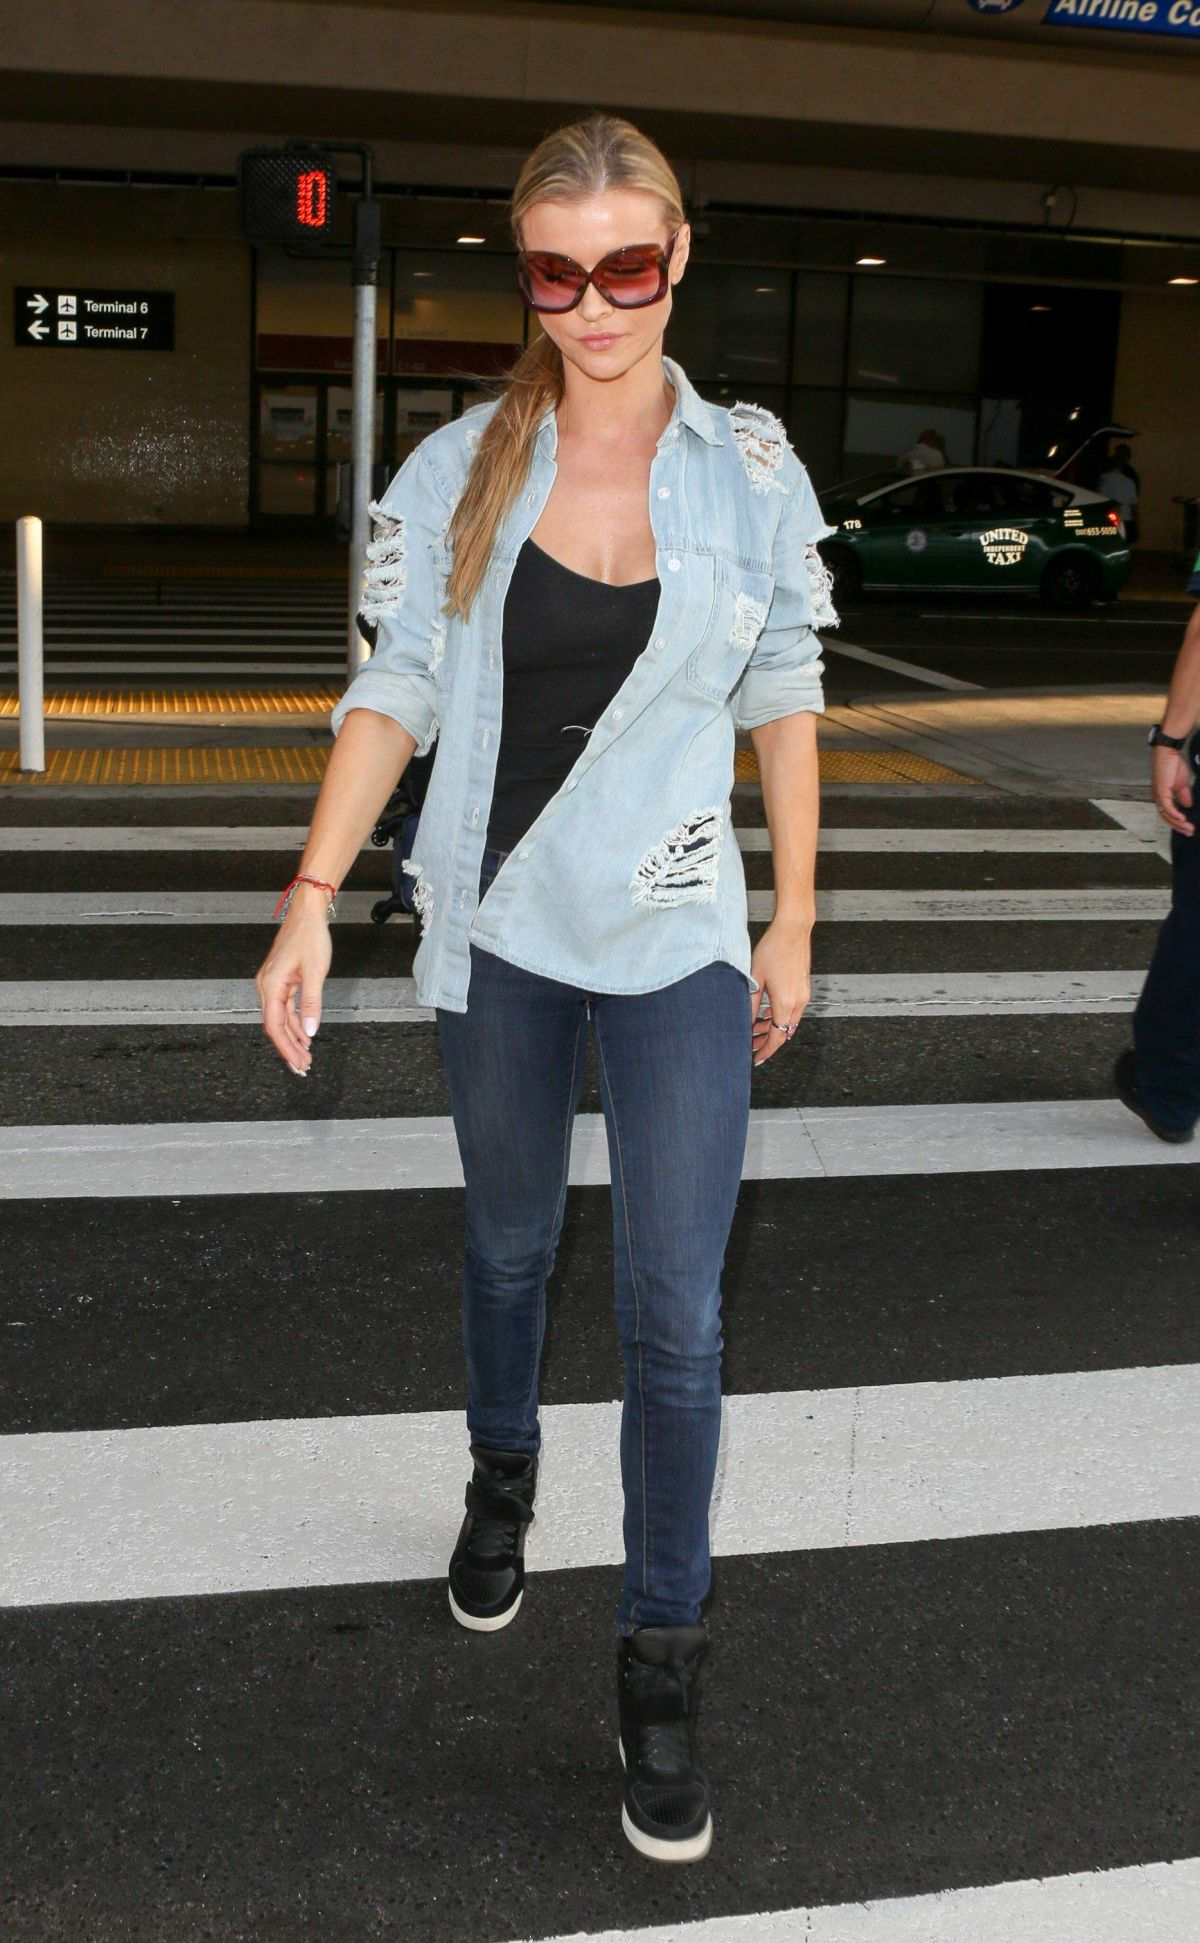 Joanna Krupa At LAX International Airport, Los Angeles   joanna-krupa-at-lax-international-airport-los-angeles_6